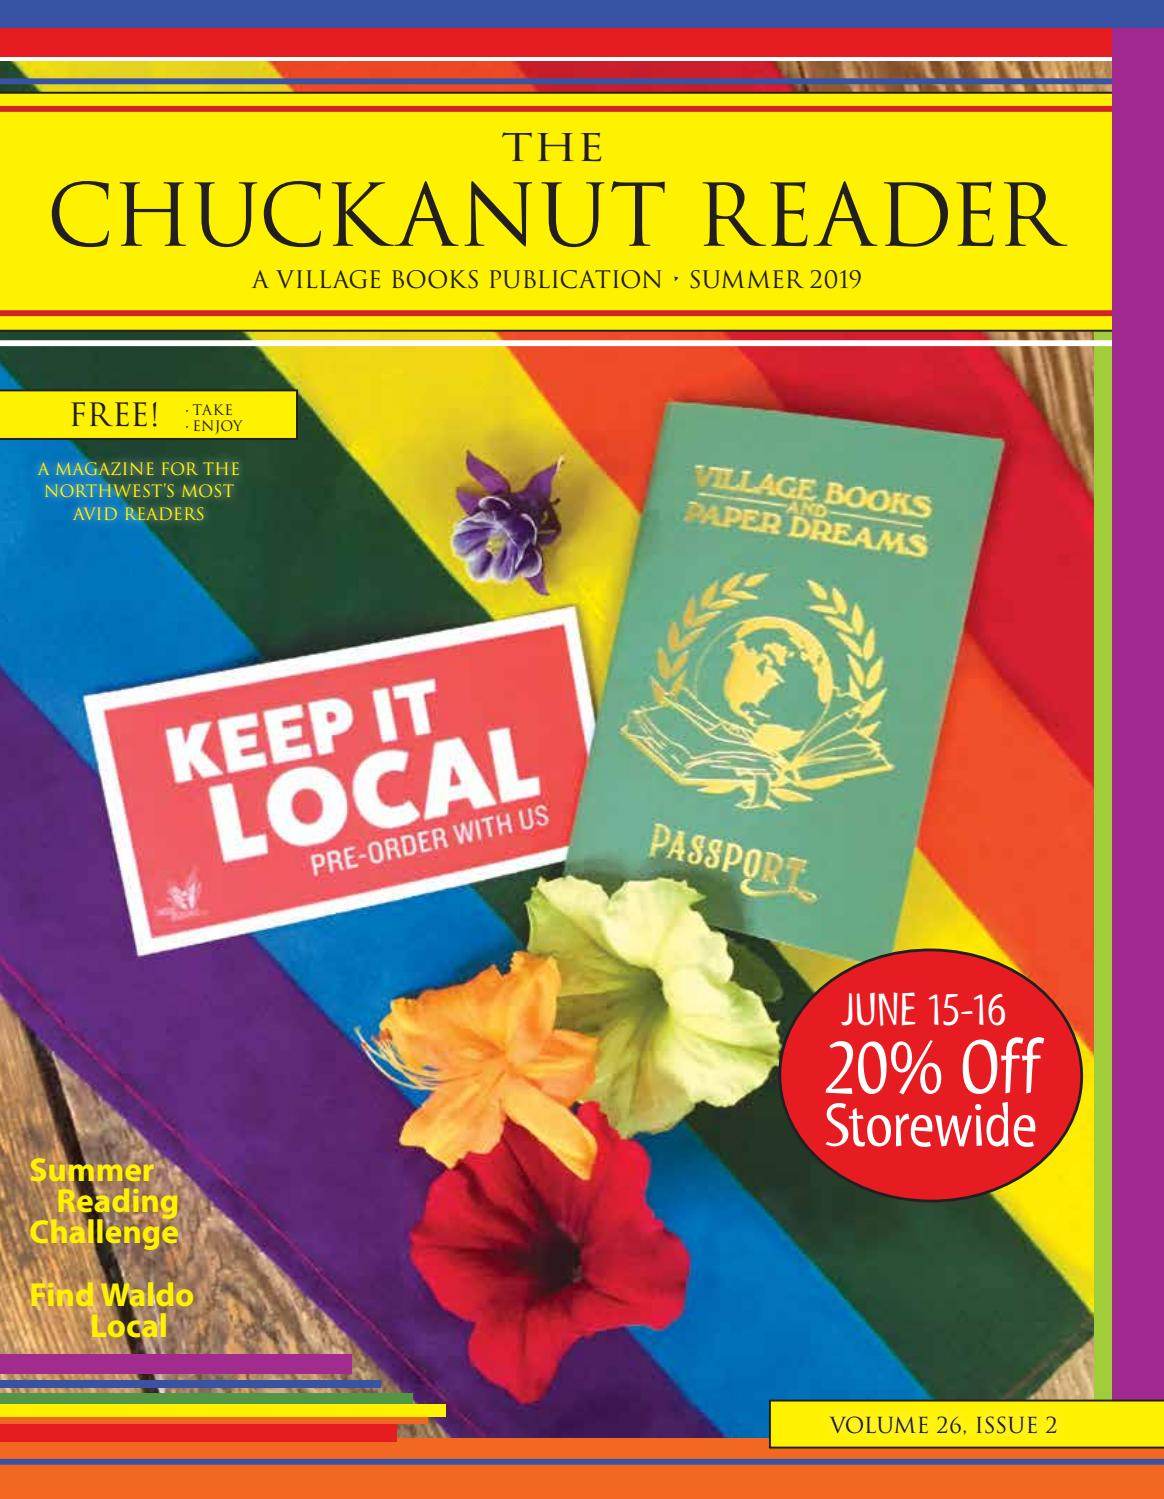 The Chuckanut Reader - Summer 2019 by Village Books and